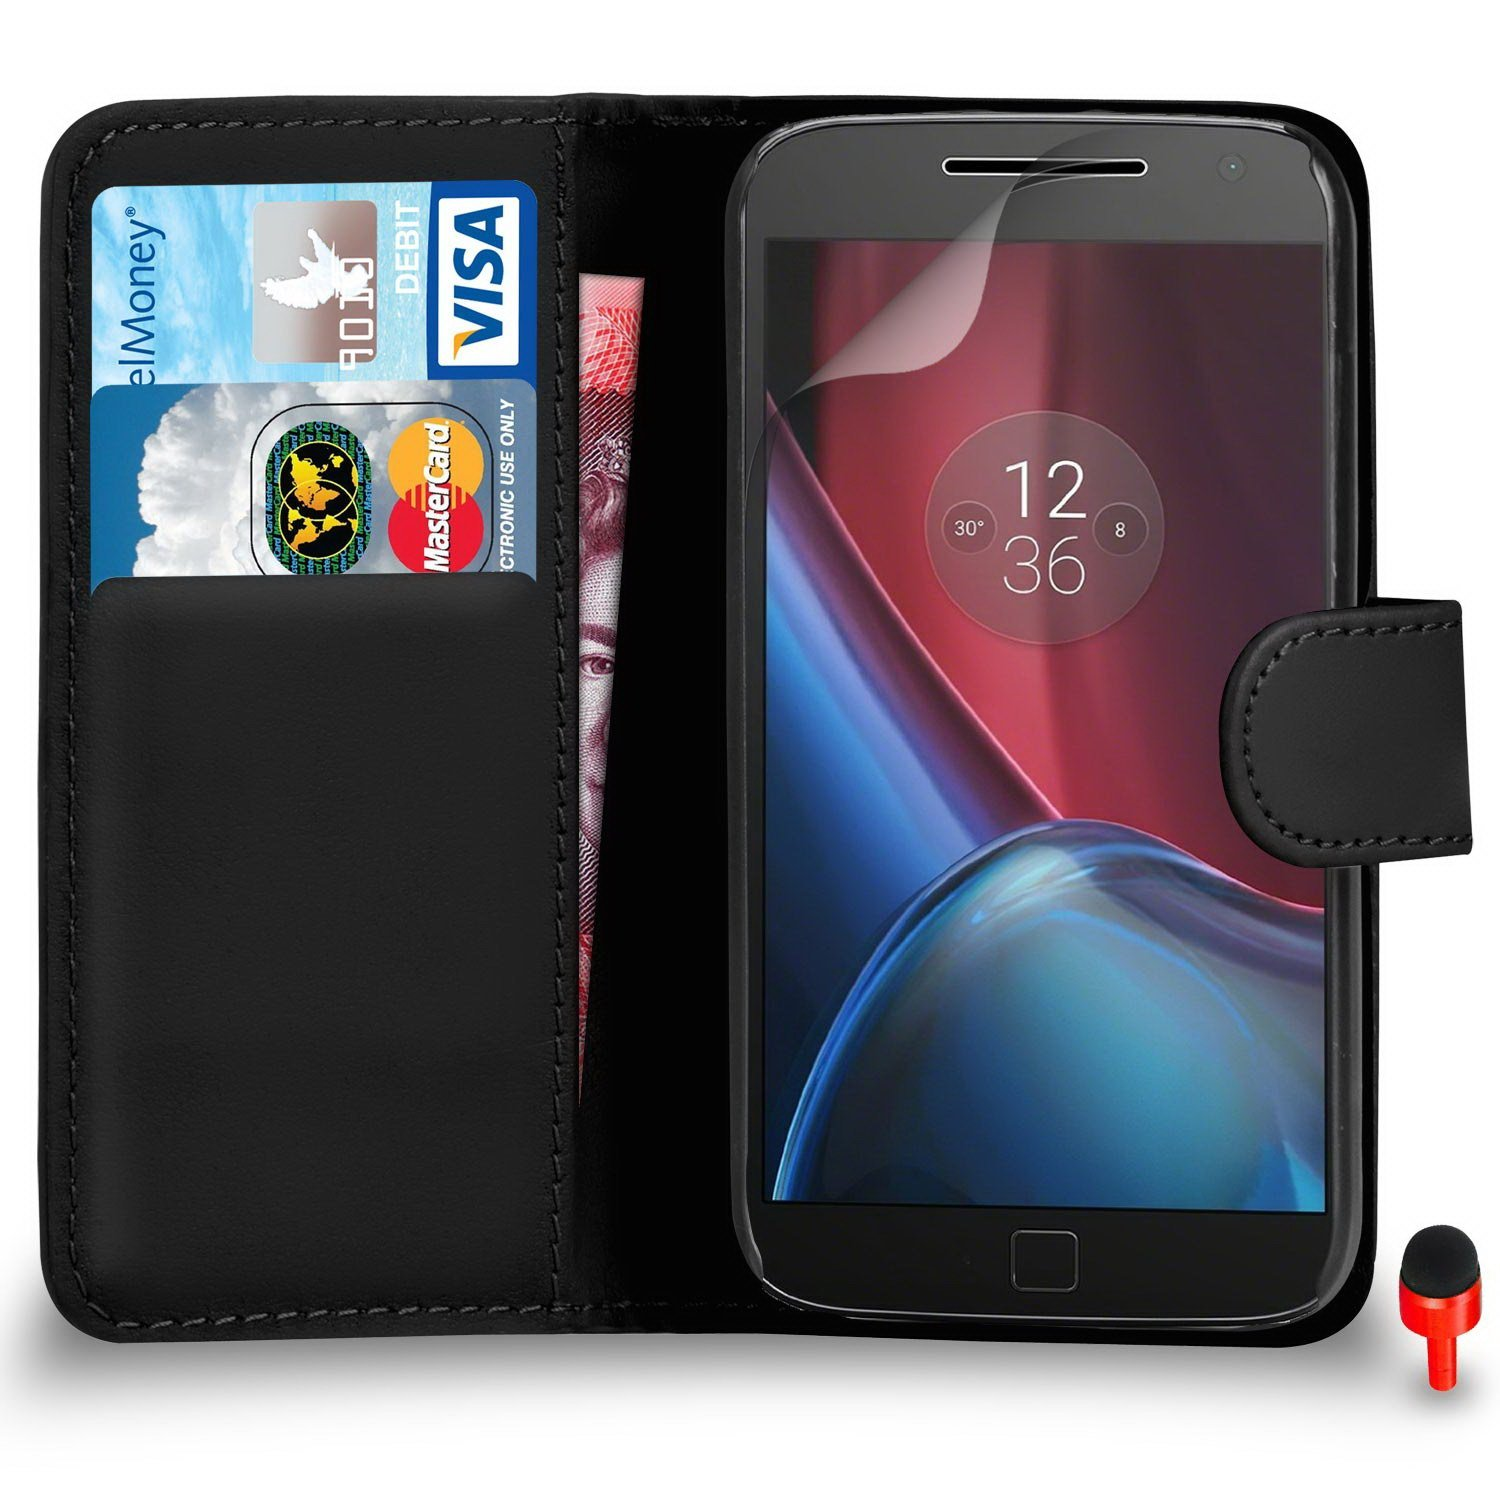 Motorola Moto G4 Premium Leather Black Wallet Flip Case Cover PouchRED DS+ Screen Protector & Polishing Cloth SVL0 BY SHUKAN®, (WALLET BLACK)